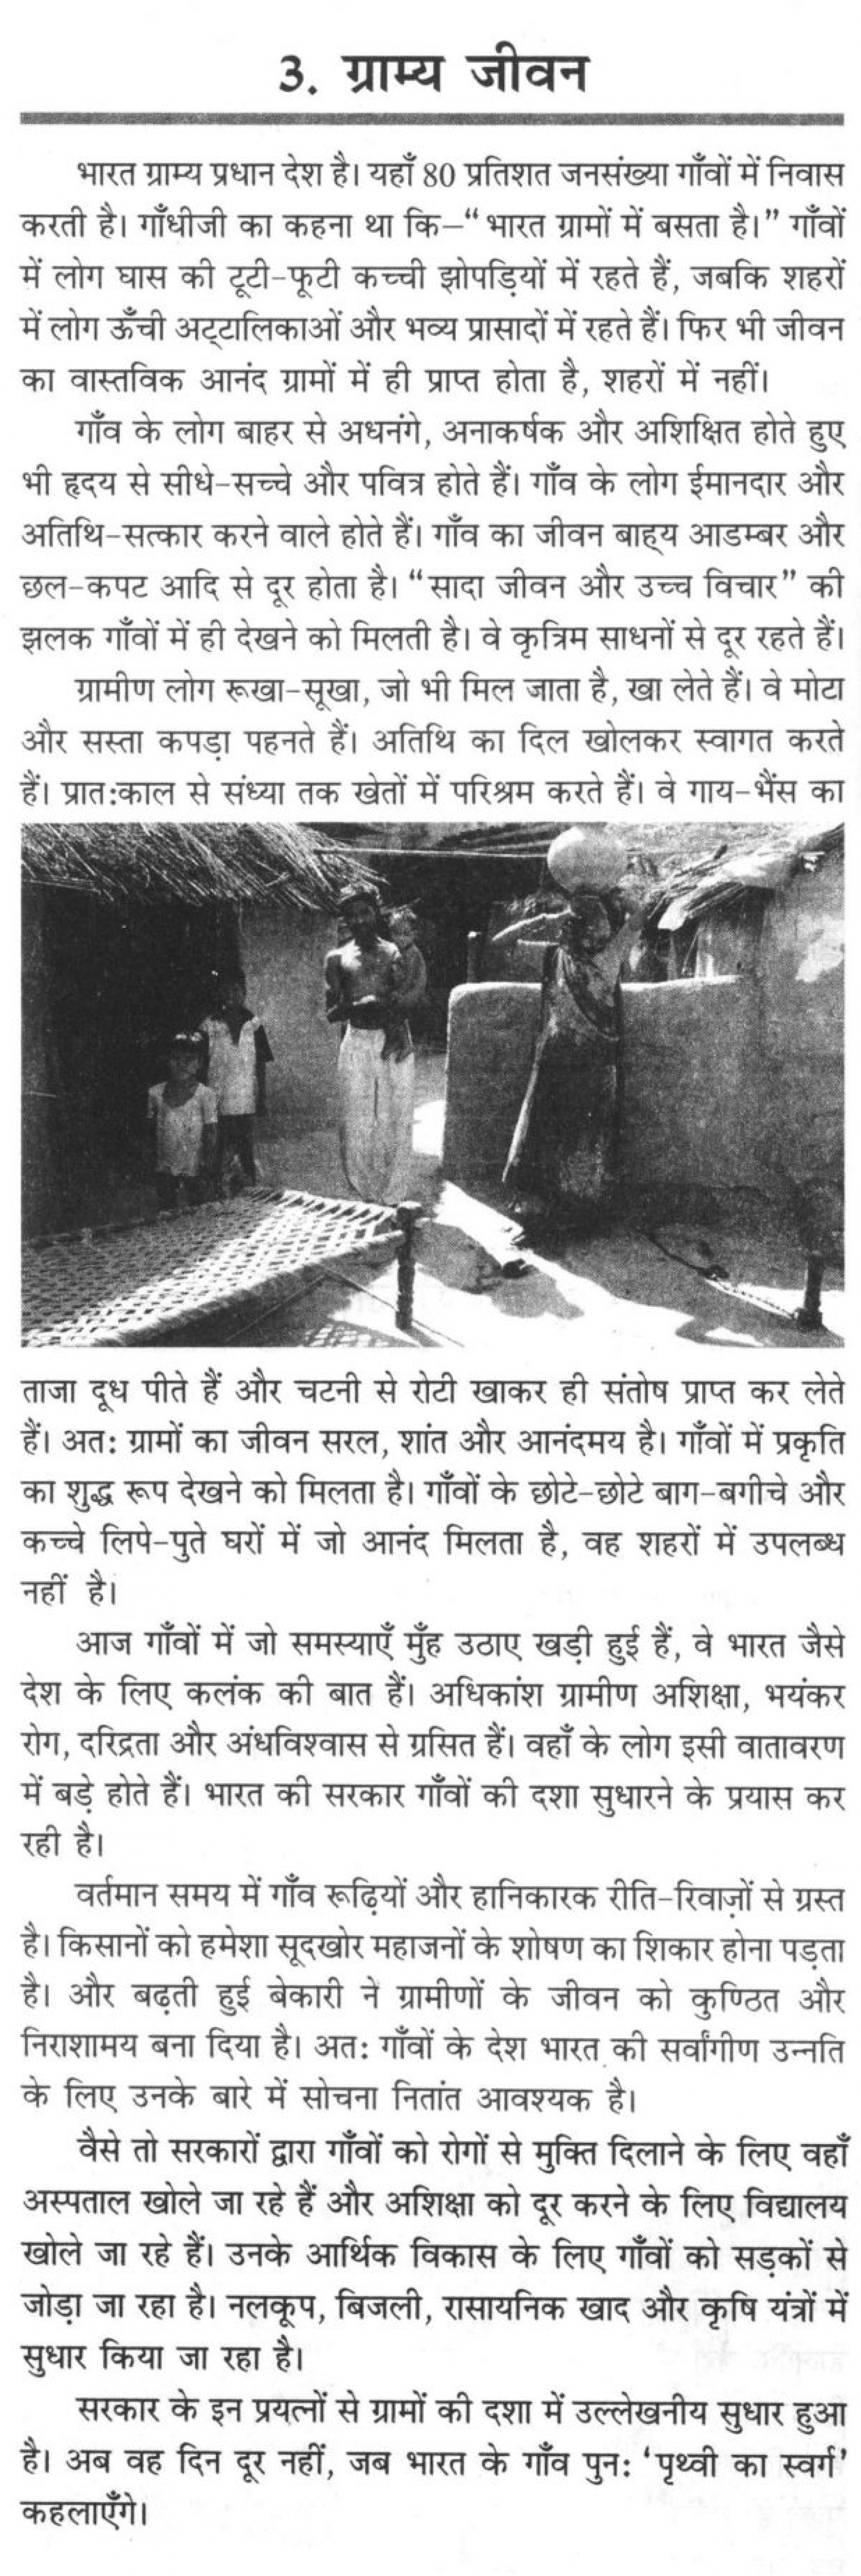 014 Essay Life In Village Example And City Thumb On Problems Gujarati Hindi Vs Is Better Than Language English Advantages Sanskrit Urdu Impressive A Indian 1920